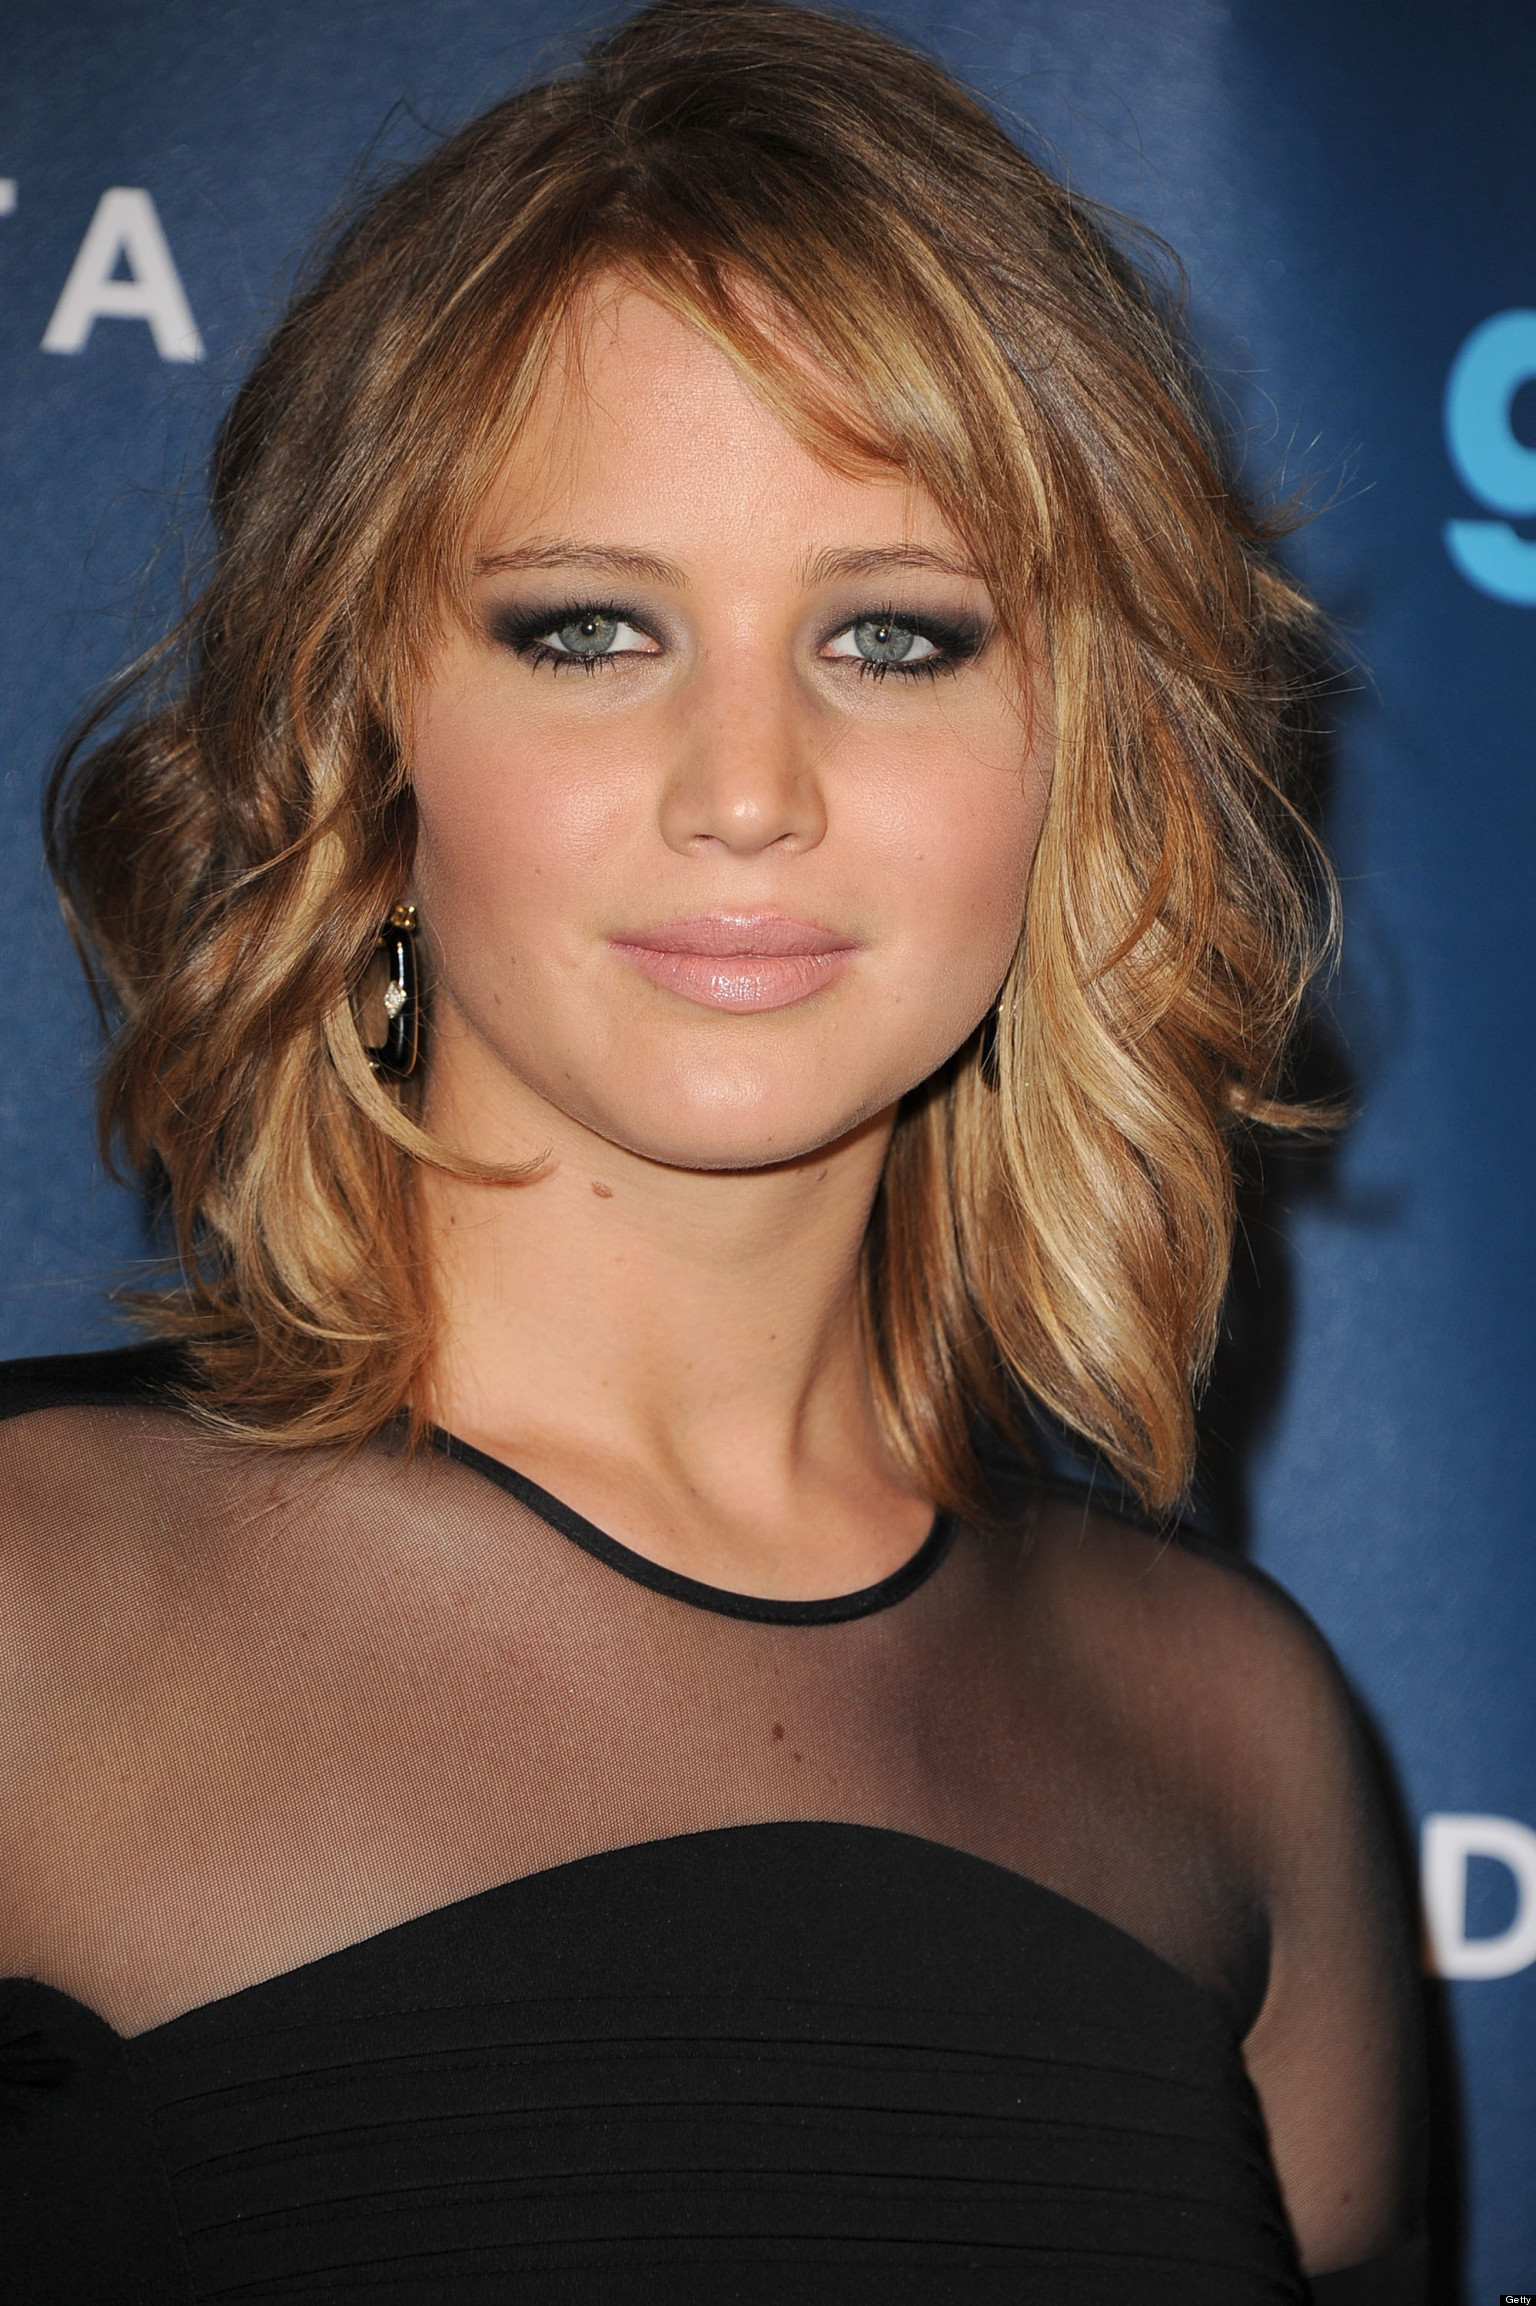 Jennifer Lawrence And Other Celebrity Discovery Stories